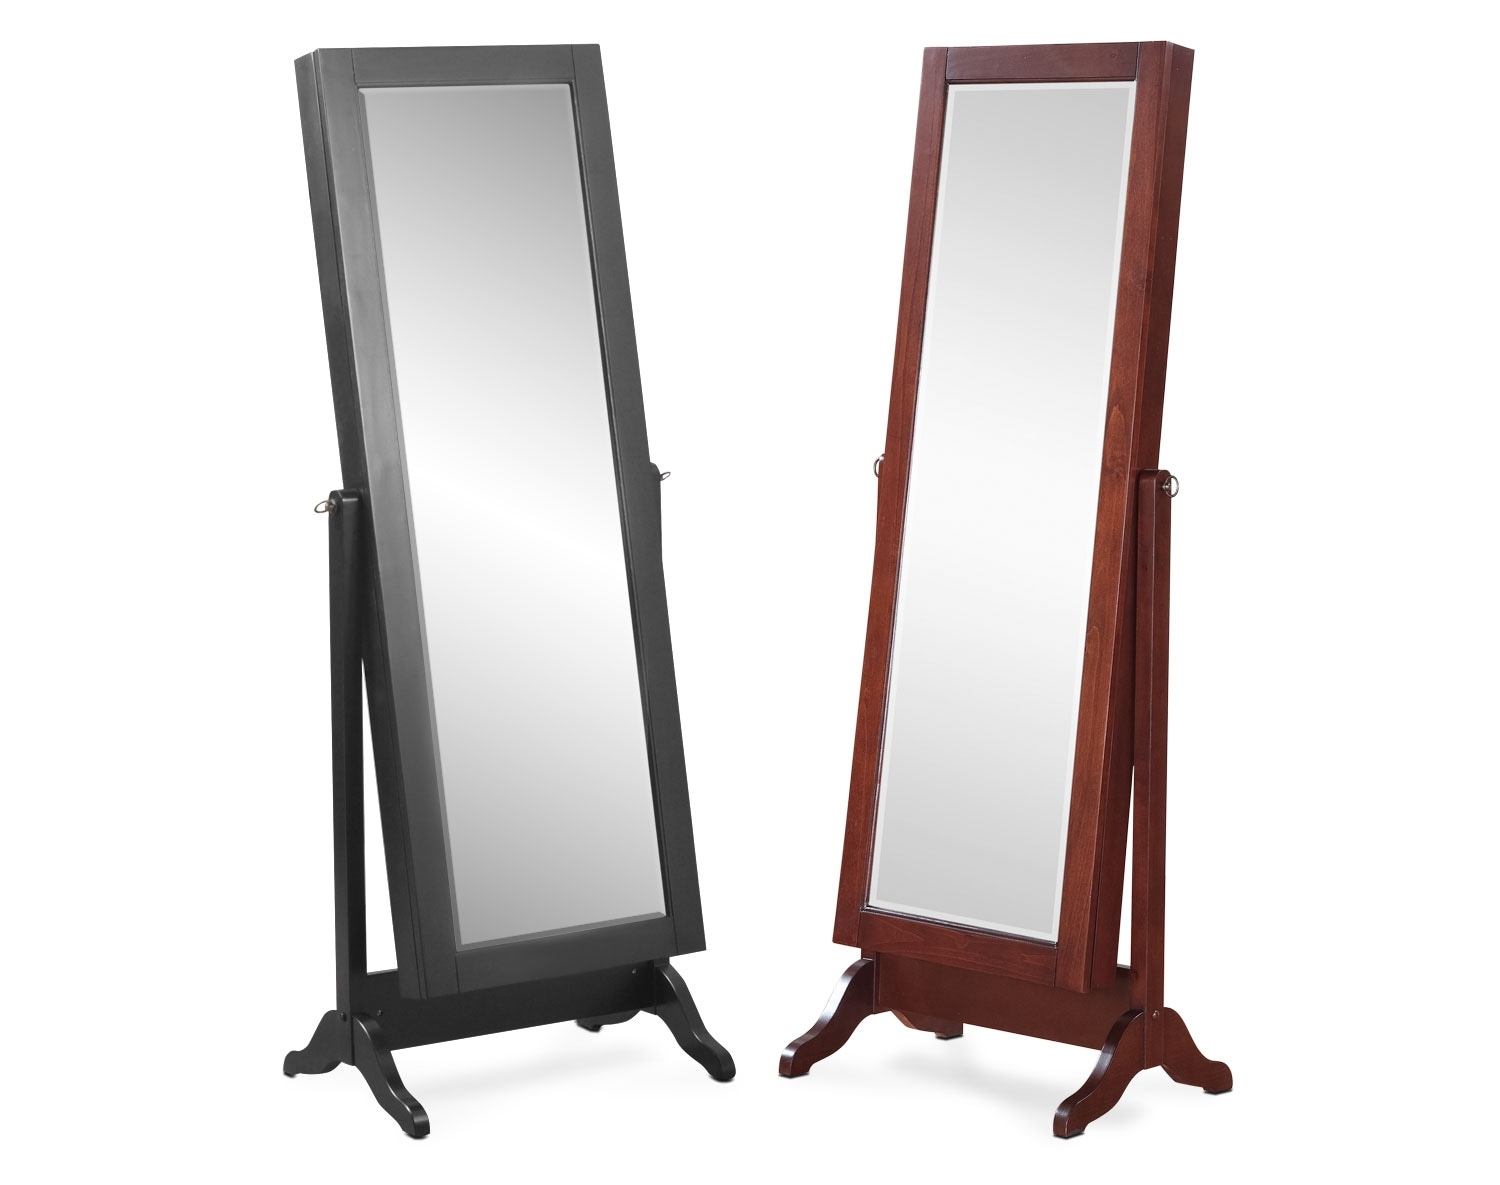 The Loren Cheval Storage Mirror